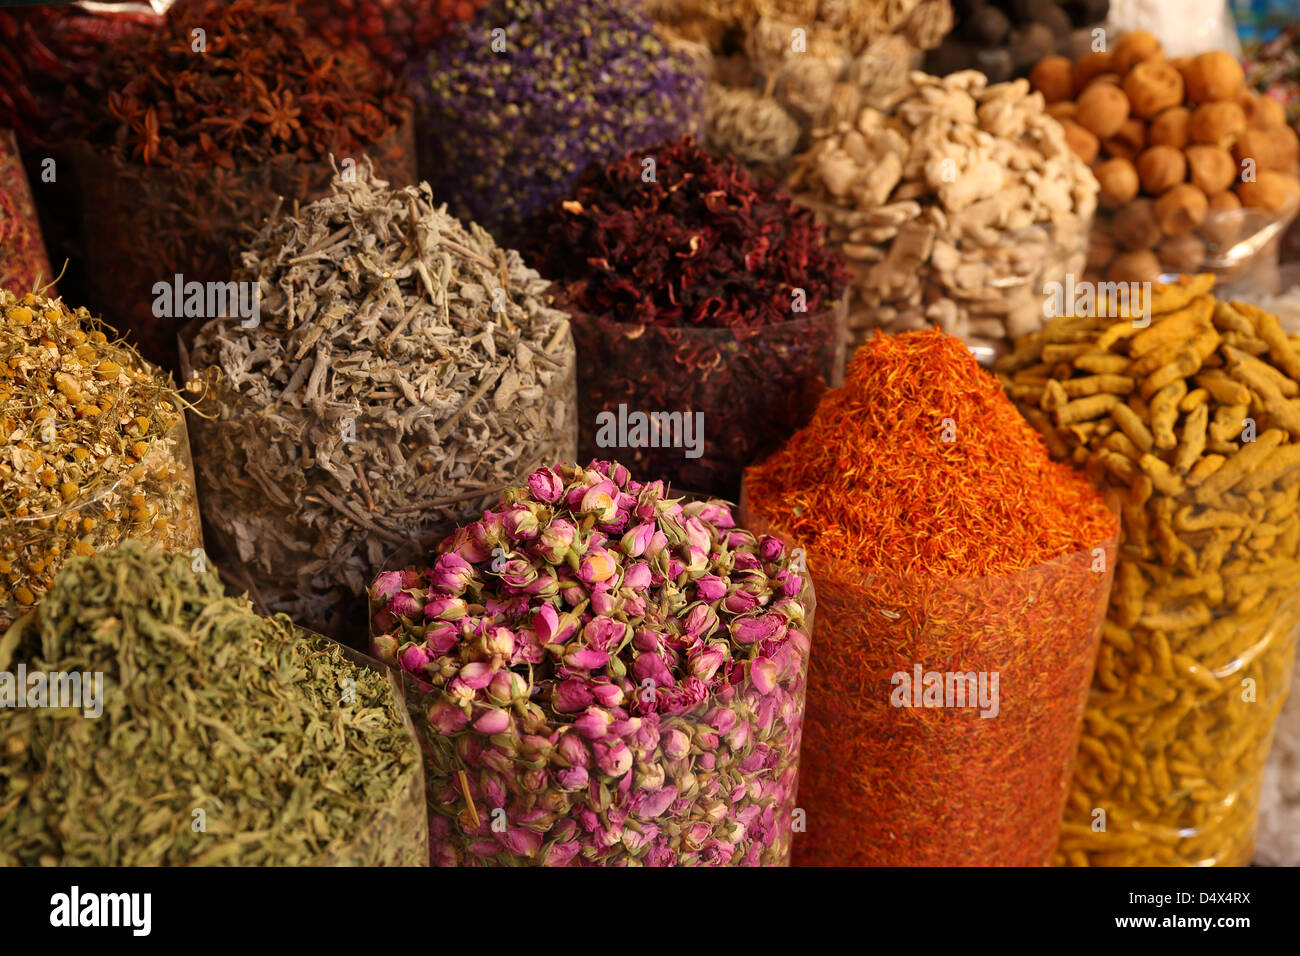 Bags of colorful spices at market in Dubai, United Arab Emirates - Stock Image